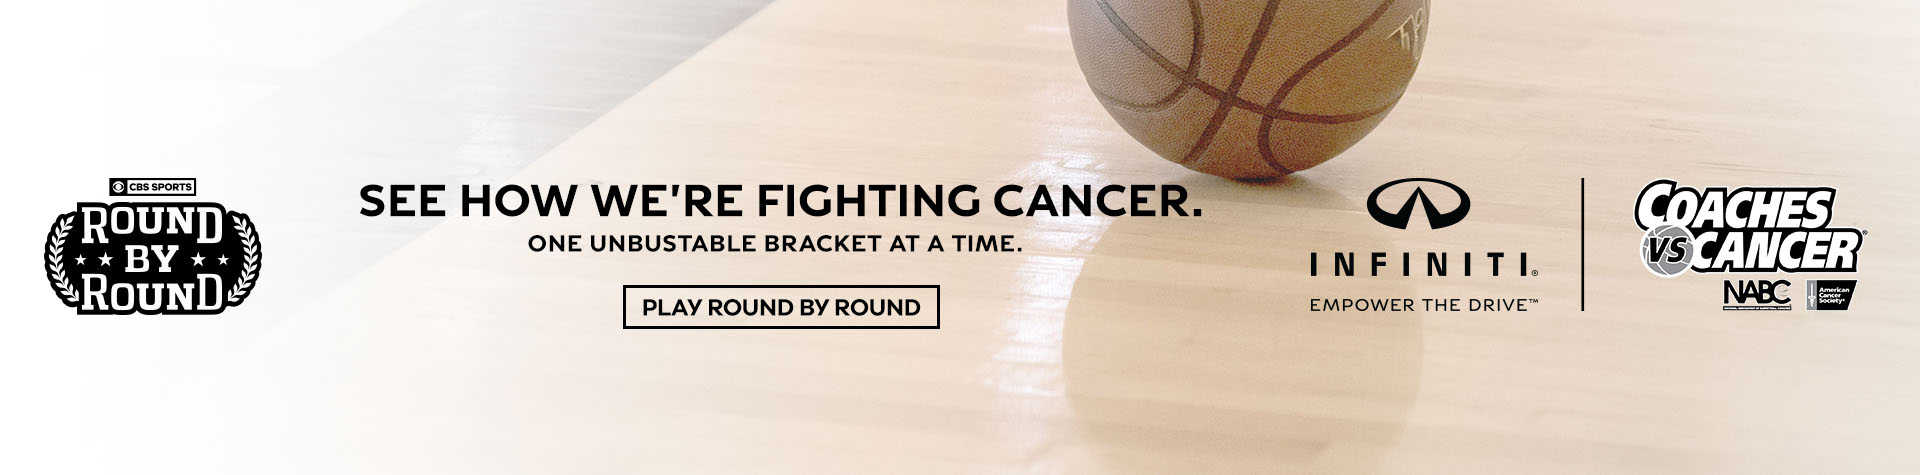 Coaches vs Cancer  Round by Round